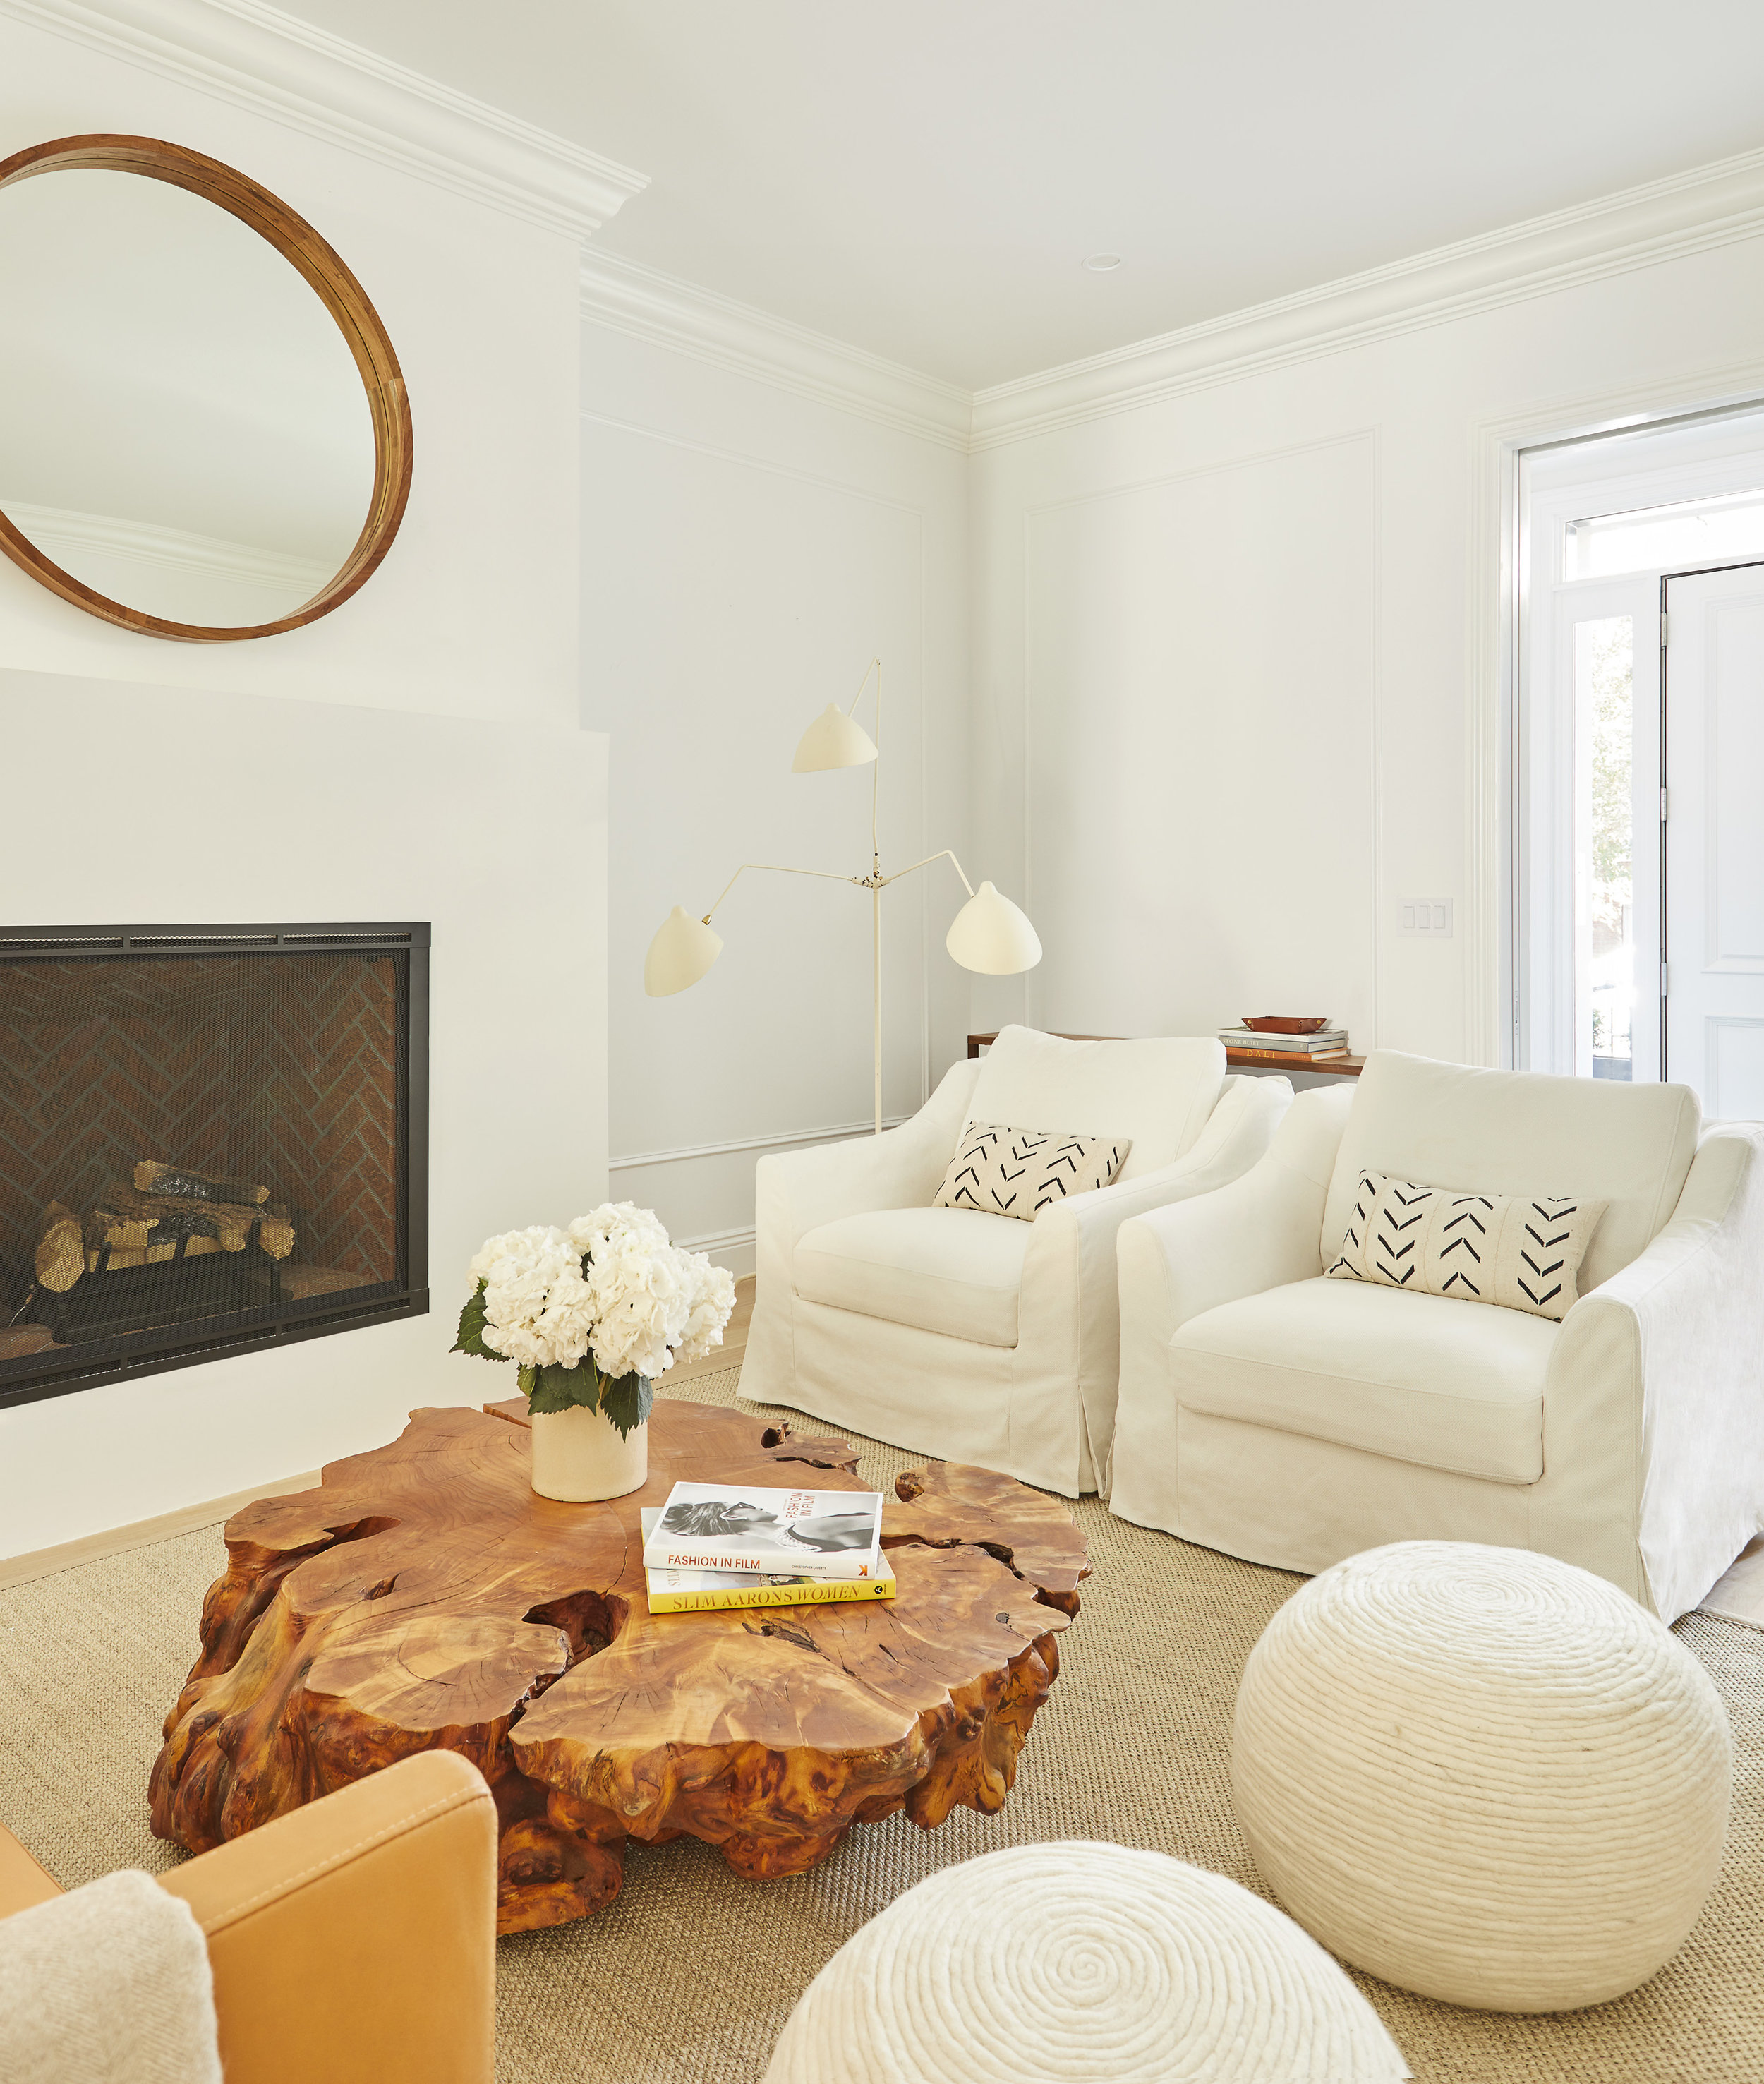 TBHCo_1706_56GarfieldPlace_267_HiRes.jpg